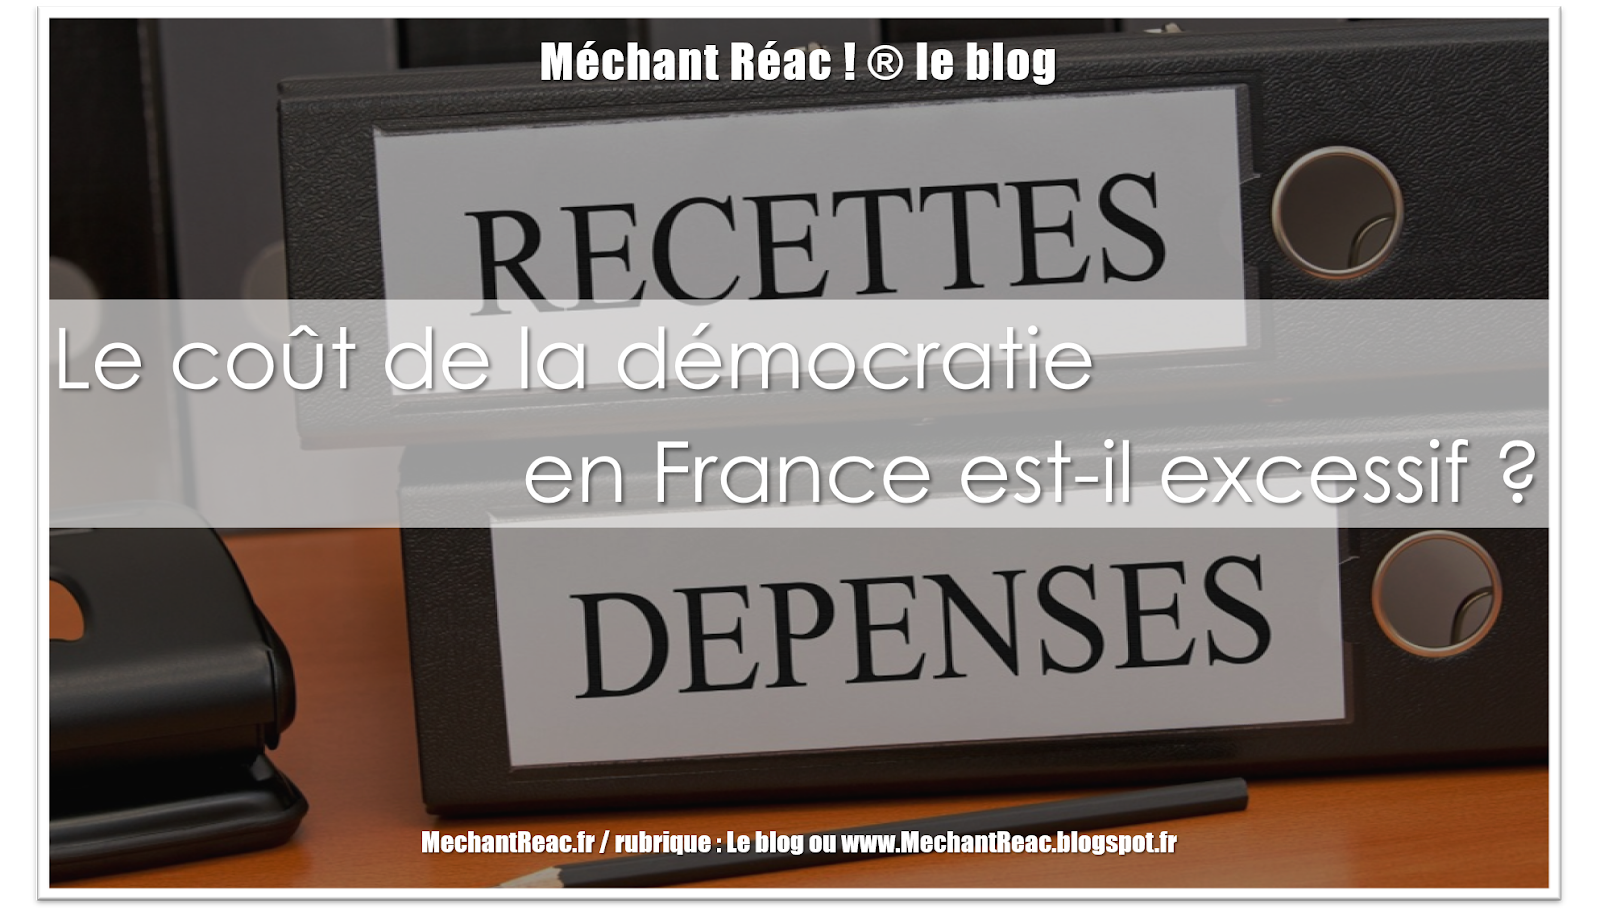 http://www.mechantreac.fr/